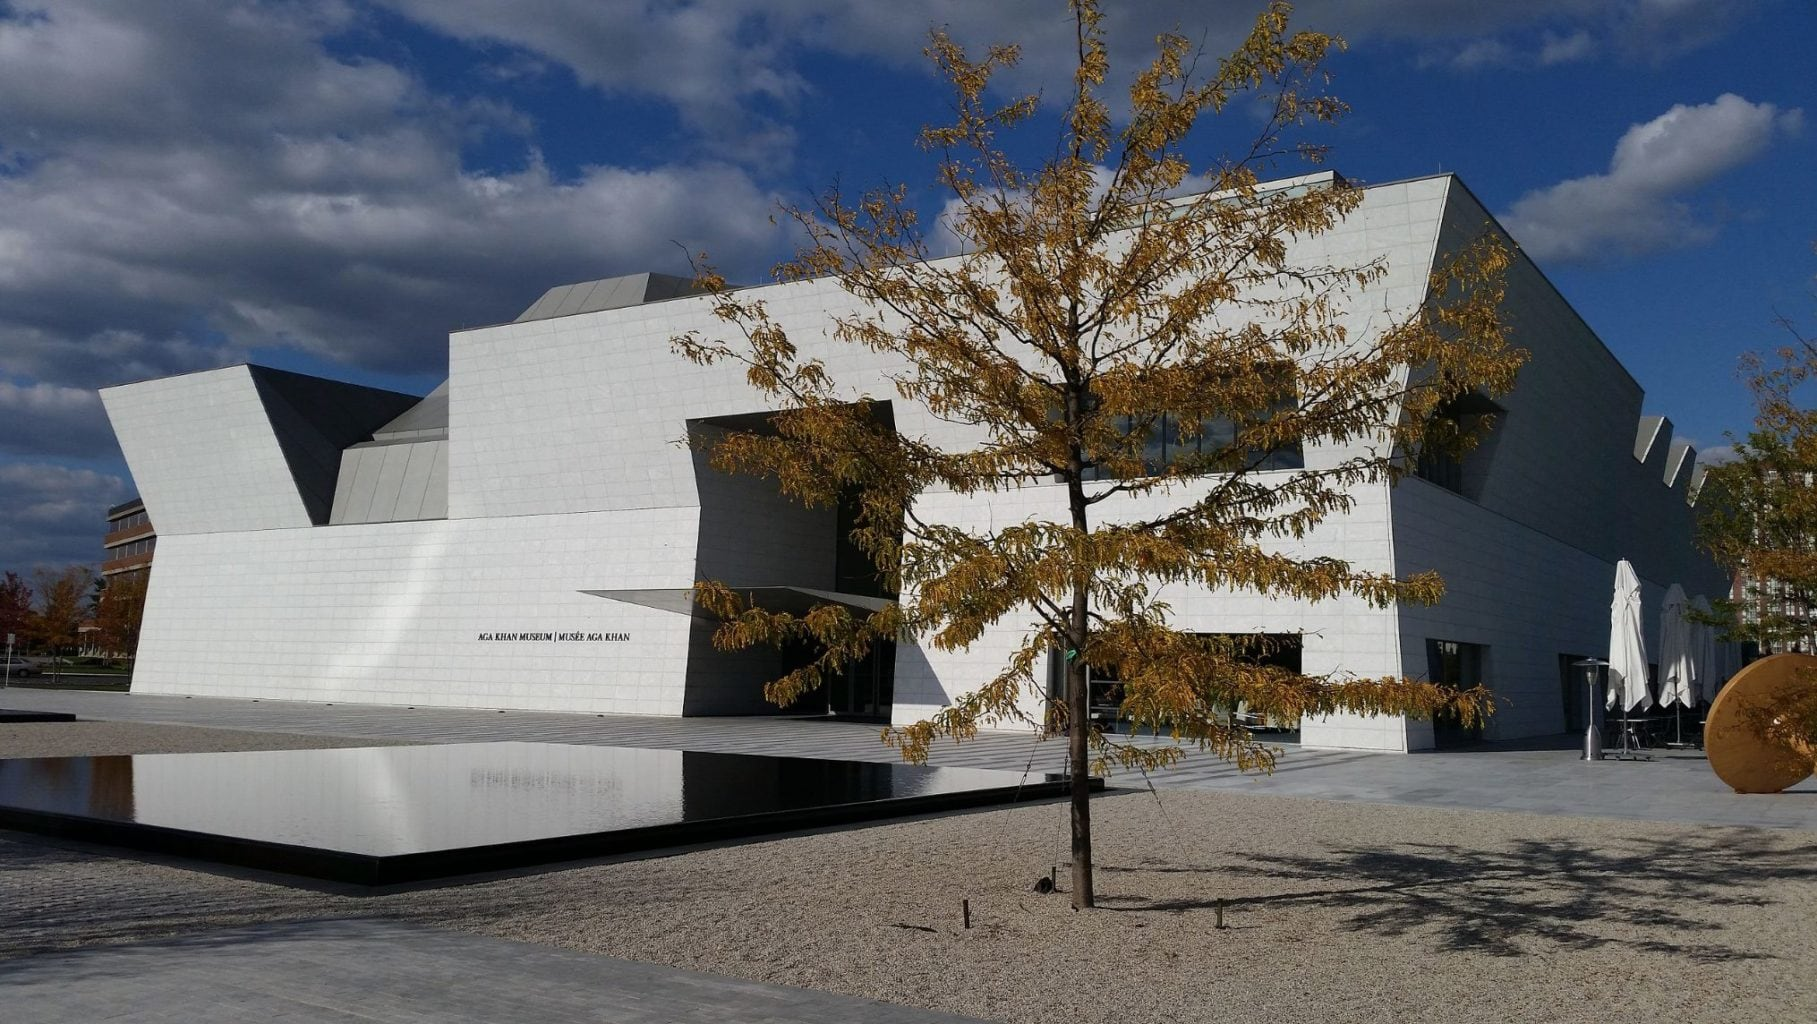 Aga Khan Museum in Don Mills Toronto